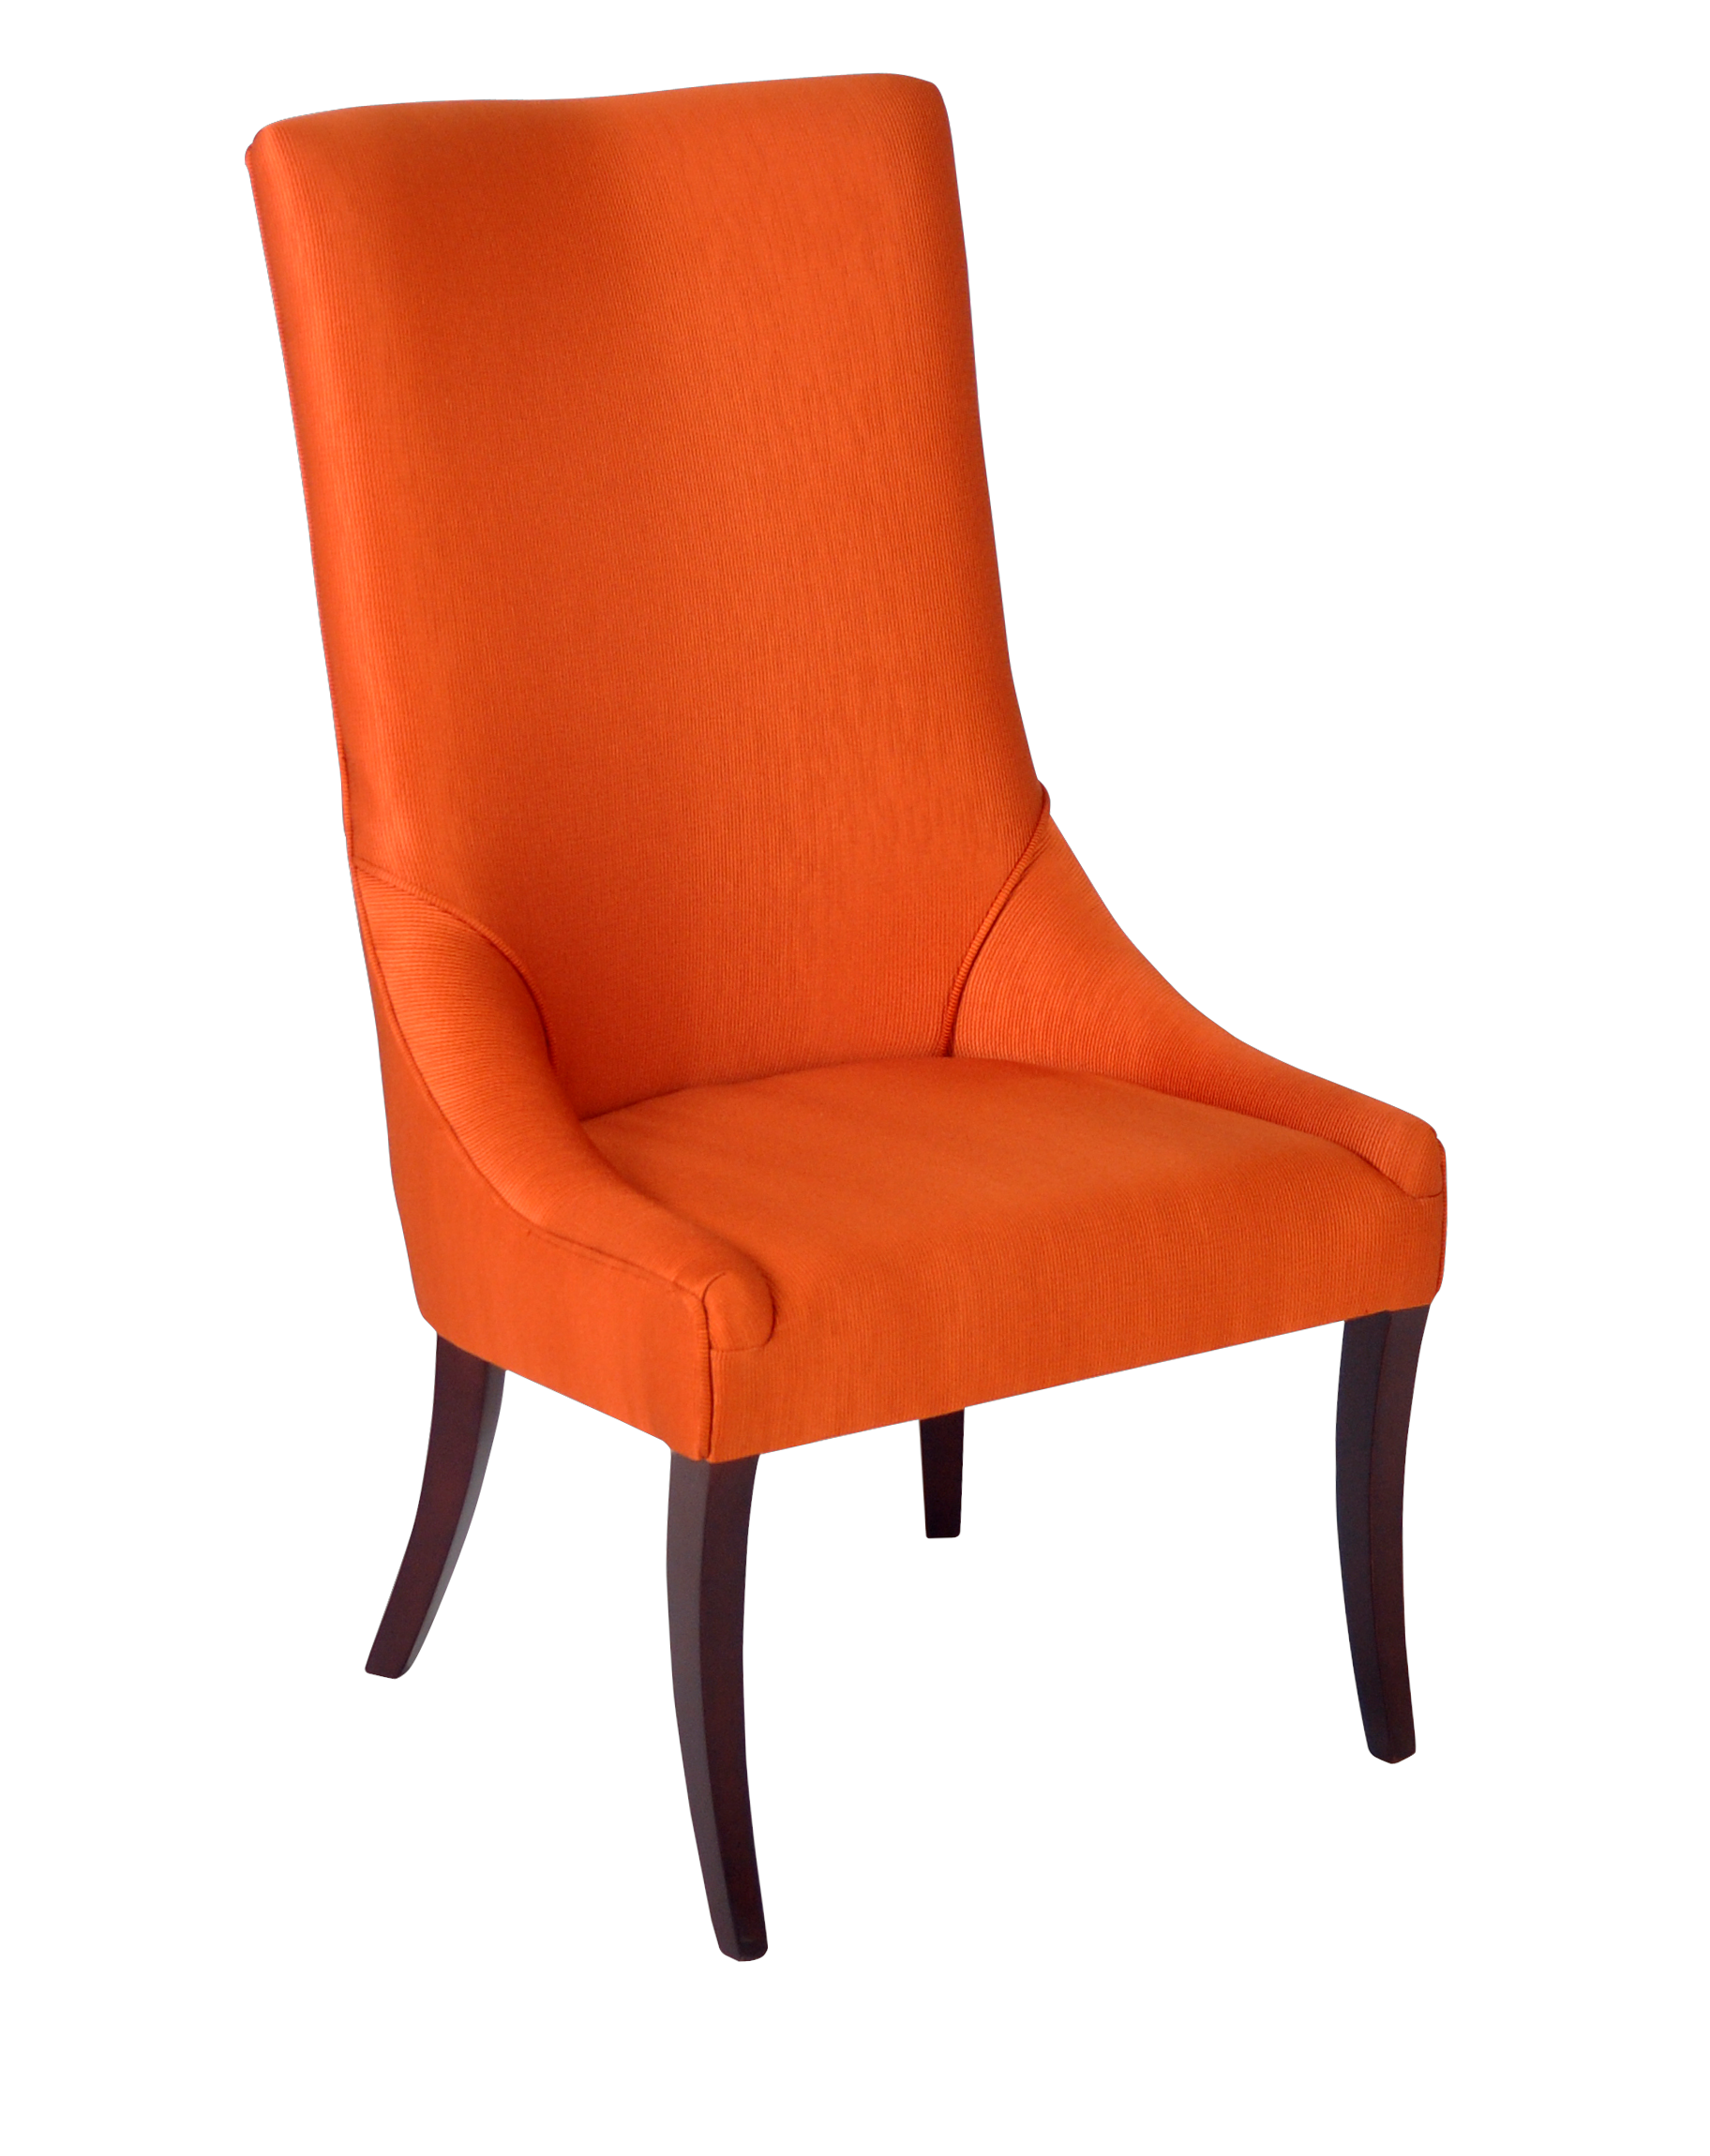 chair png transparent chair images pluspng #13217